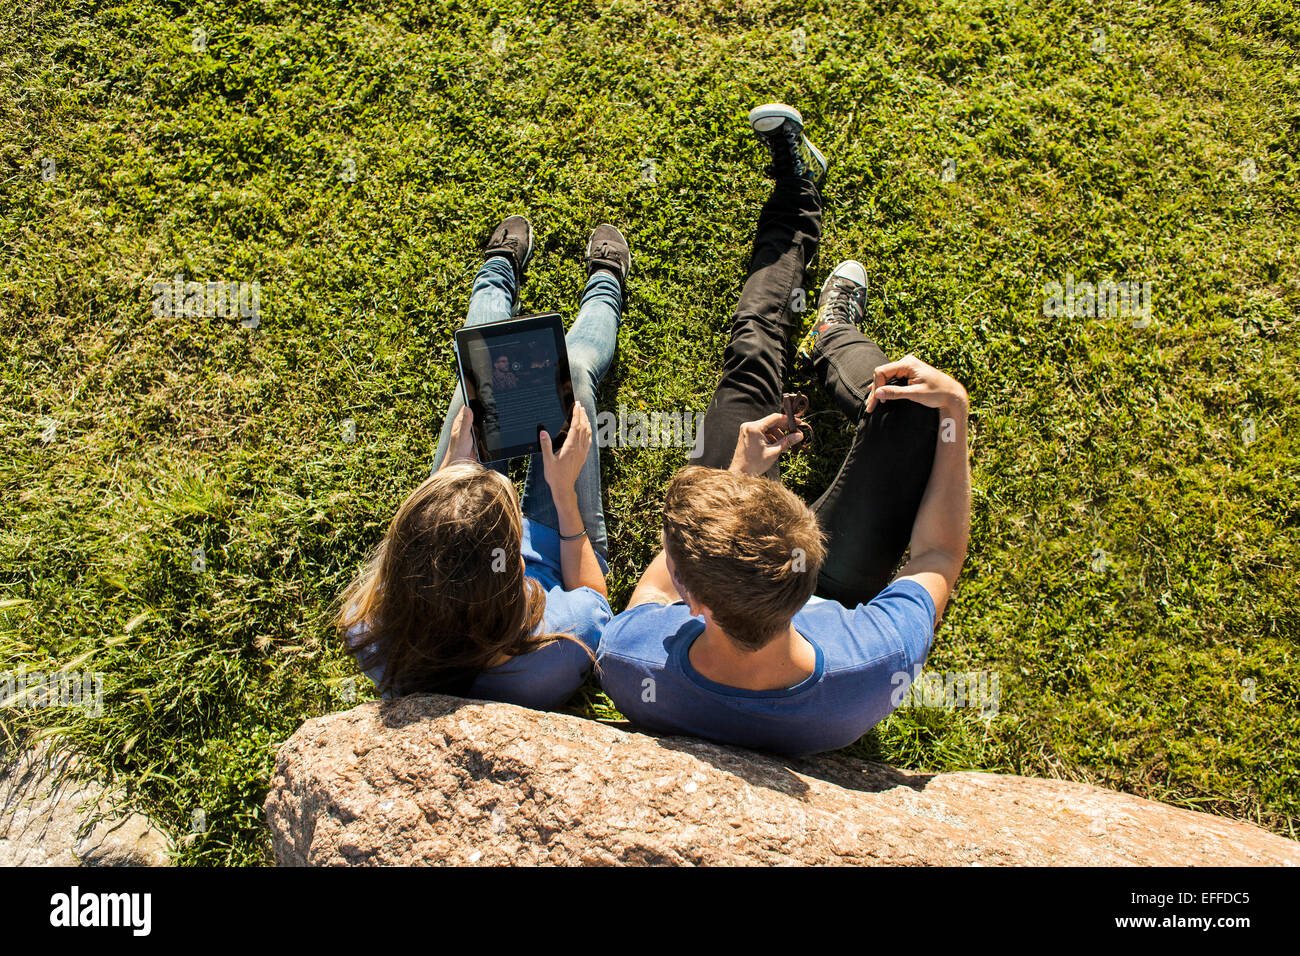 High angle view of couple using digital tablet on grassy landscape - Stock Image